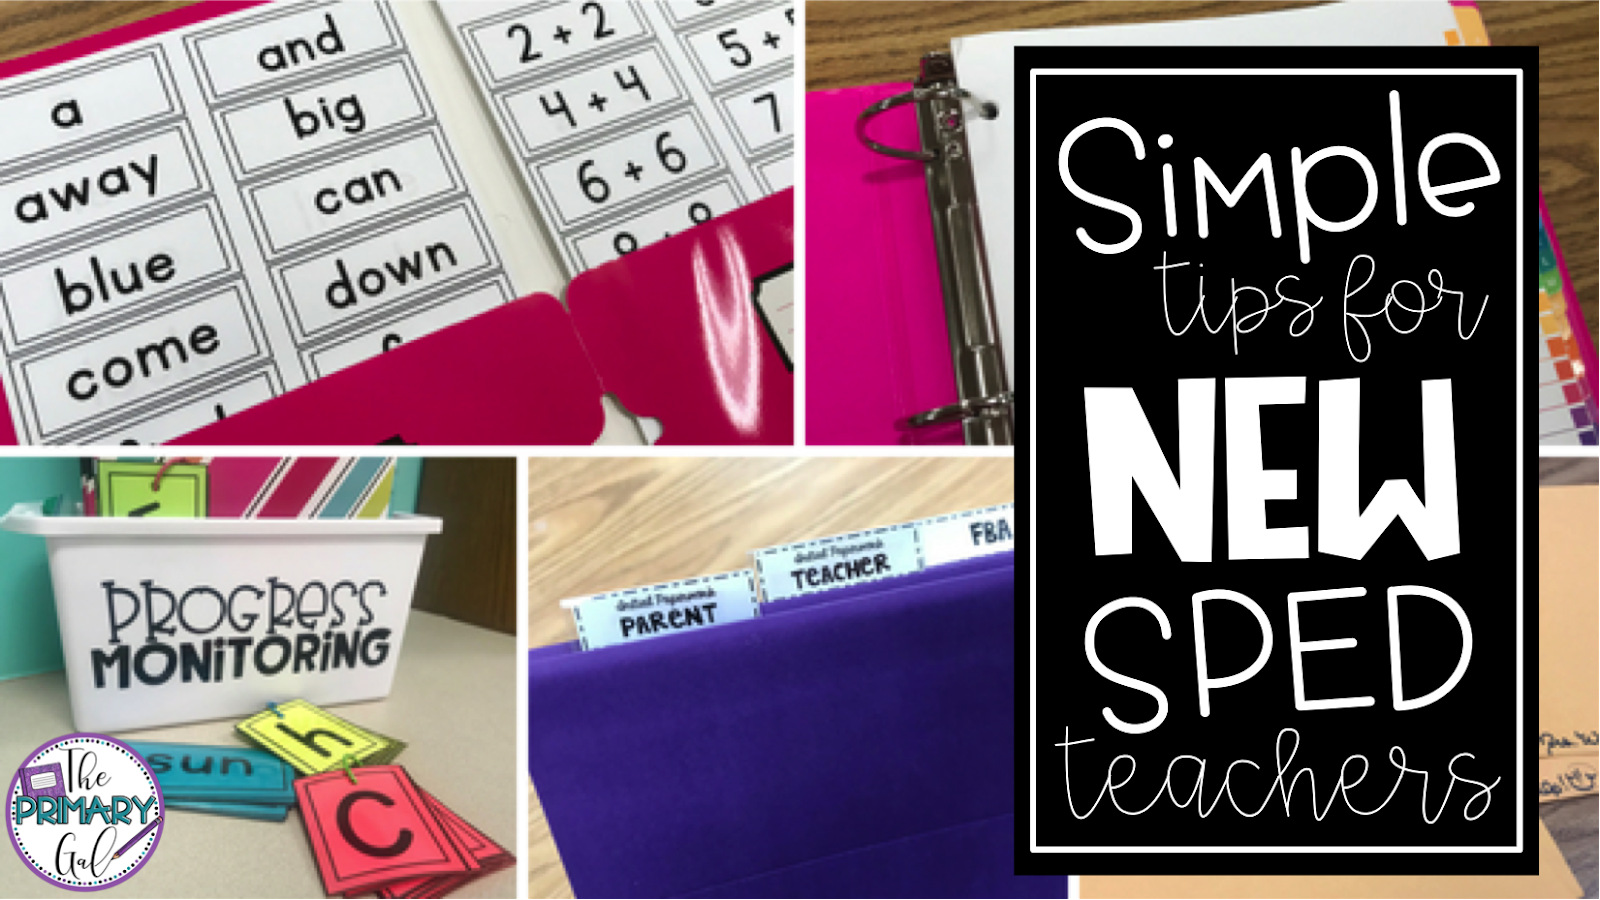 Being a Special Education teacher is incredibly rewarding and at times overwhelming. I address my simple tips and tricks for new teachers in this blog post and Tpt link. Whether you're reaching out to new coworkers, contacting parents at the beginning of the year, or implementing a new progress monitoring technique, everyone could use a few new ideas to help your year take shape.{new, tips, elementary, idea, special education, IEP}